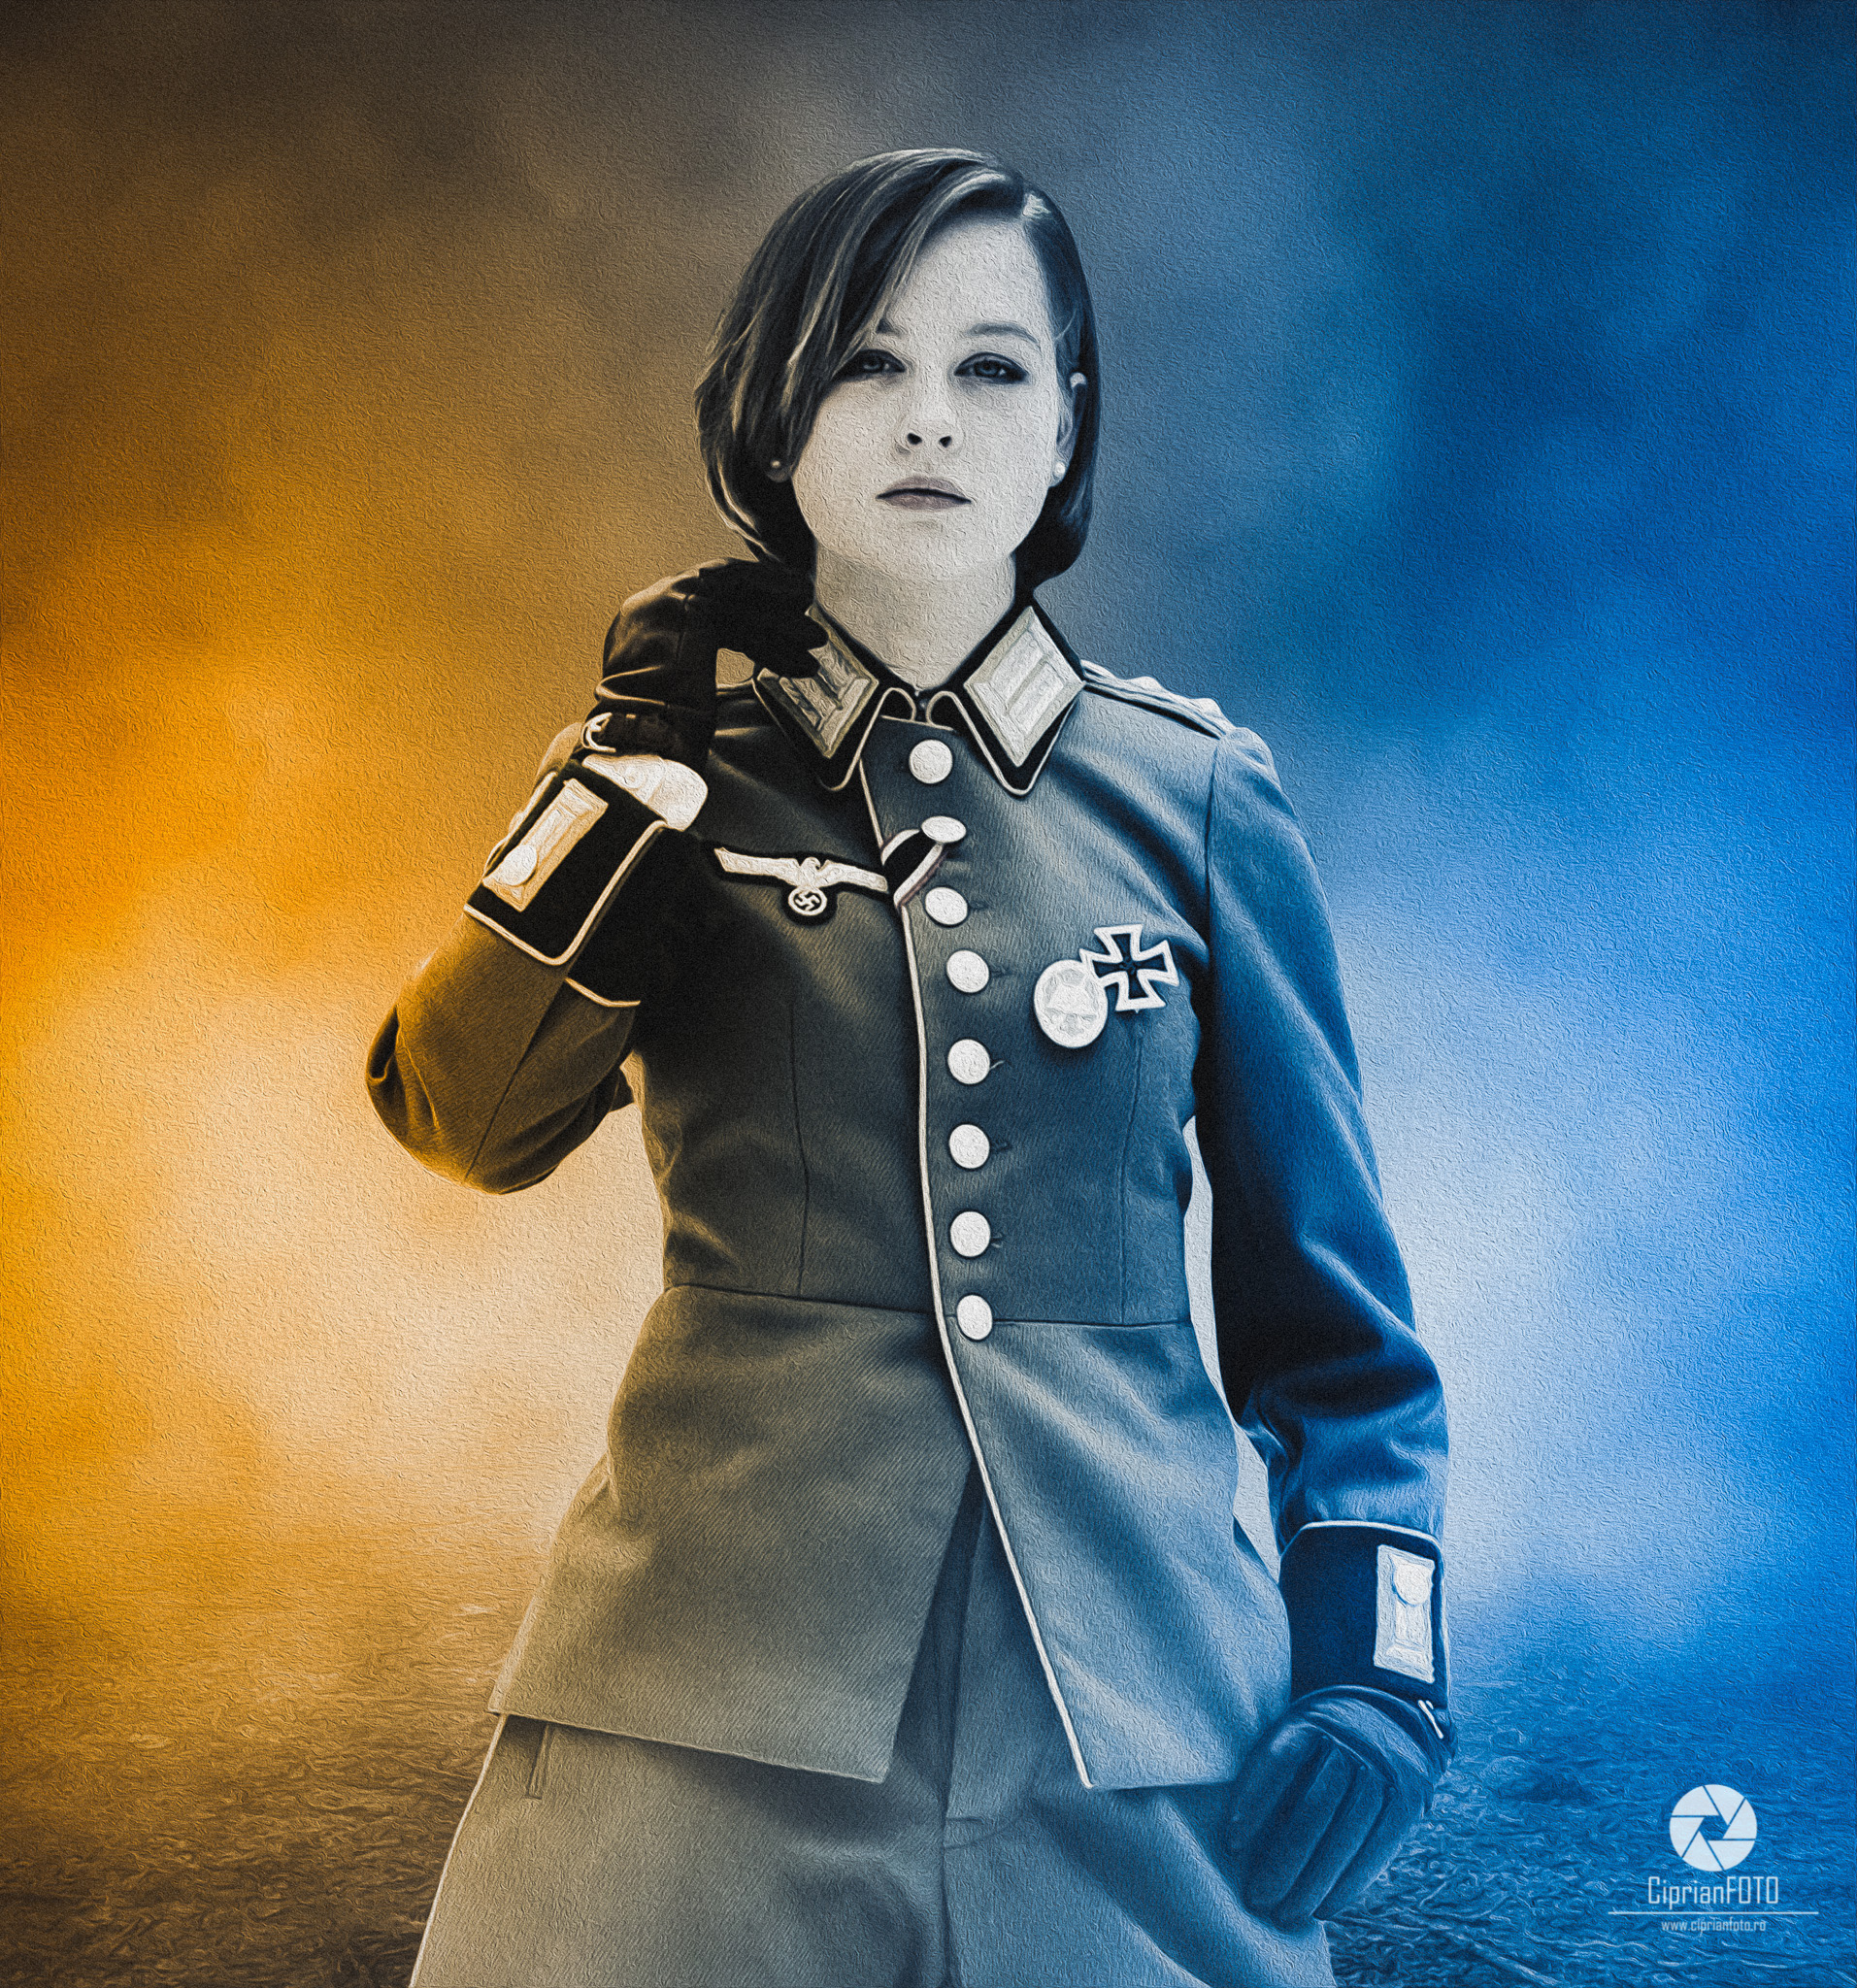 Nazi, Woman, Soldier, Photoshop Manipulation Tutorial, CiprianFOTO, Ciprian FOTO, Photo Manipulation Tutorial, Photoshop Ideas, Photo Manipulation Ideas